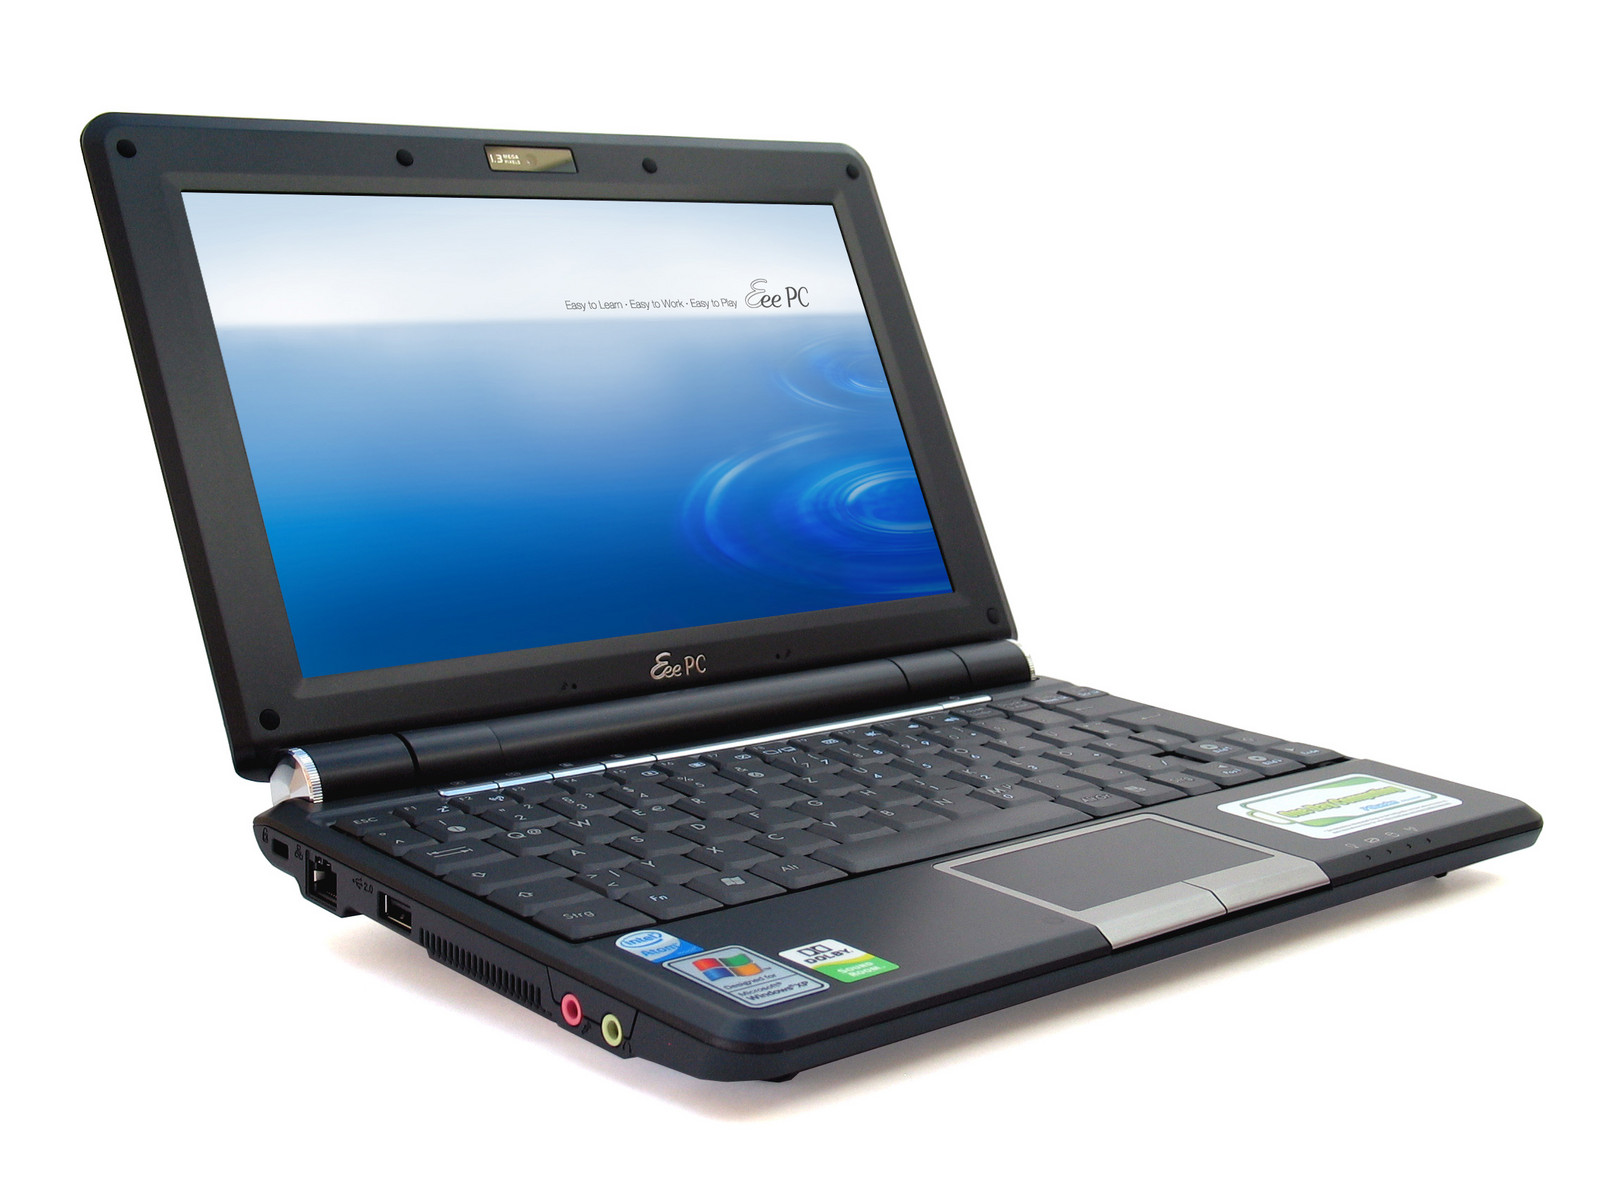 ASUS EEE PC 1000H LAN TREIBER WINDOWS XP